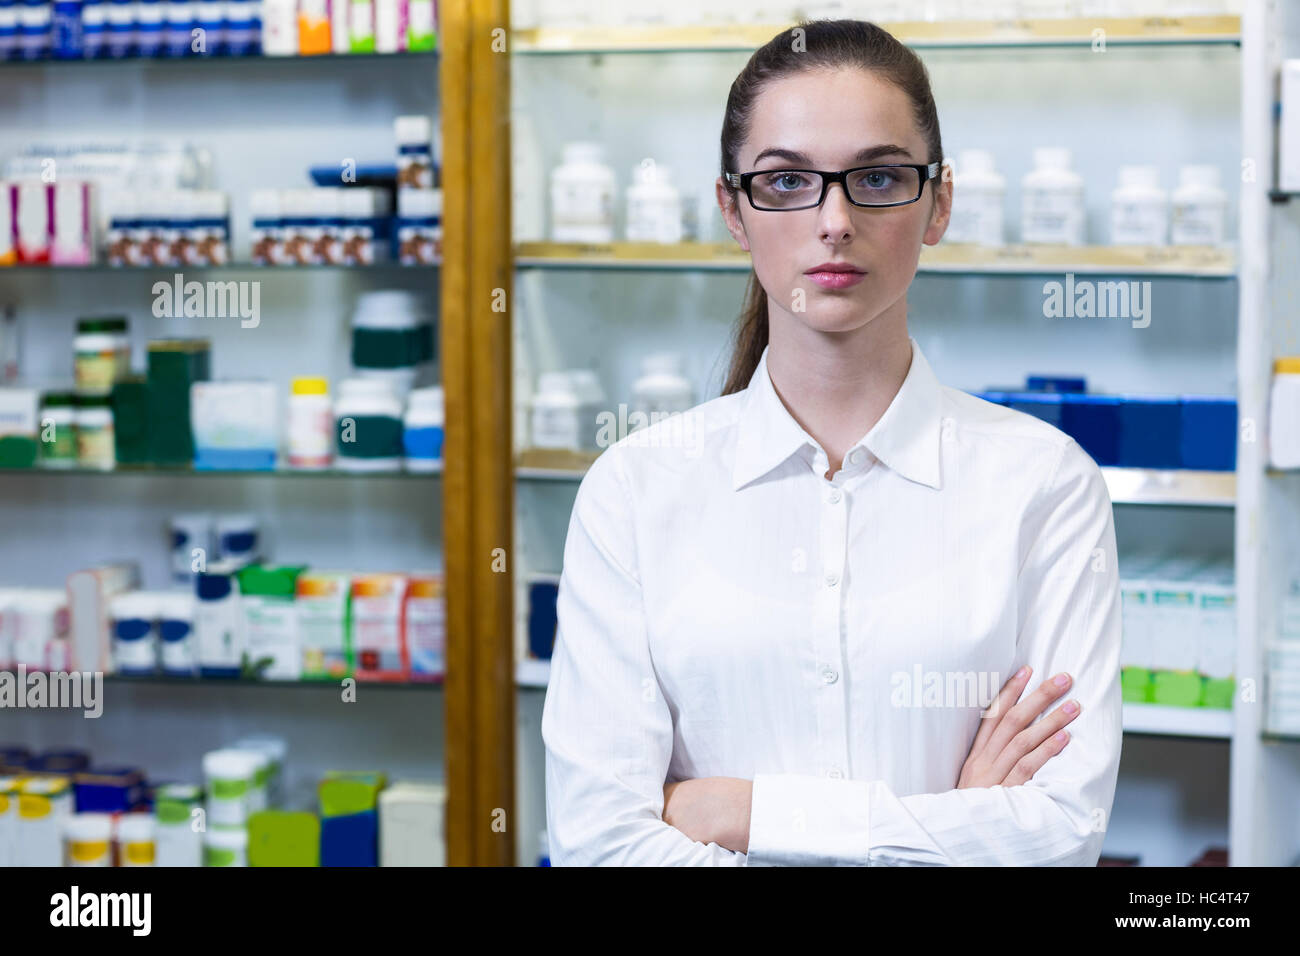 Pharmacist standing with arms crossed in pharmacy - Stock Image